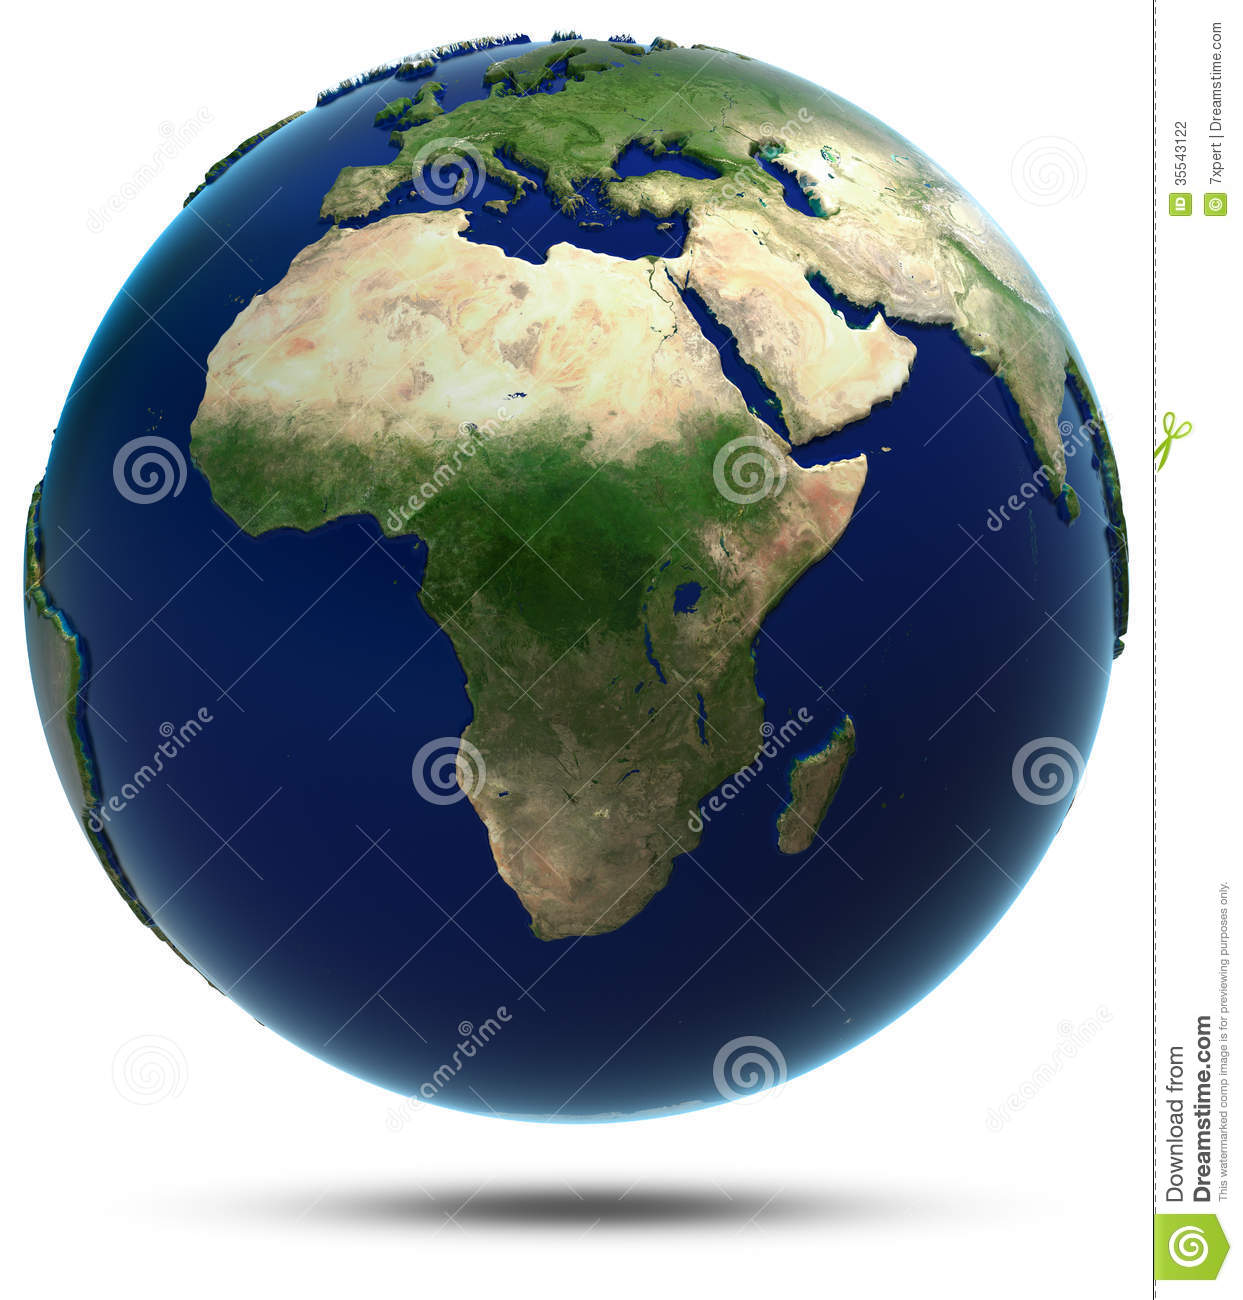 Map Of Africa From Space.Africa Map From Space Stock Illustration Illustration Of Bird